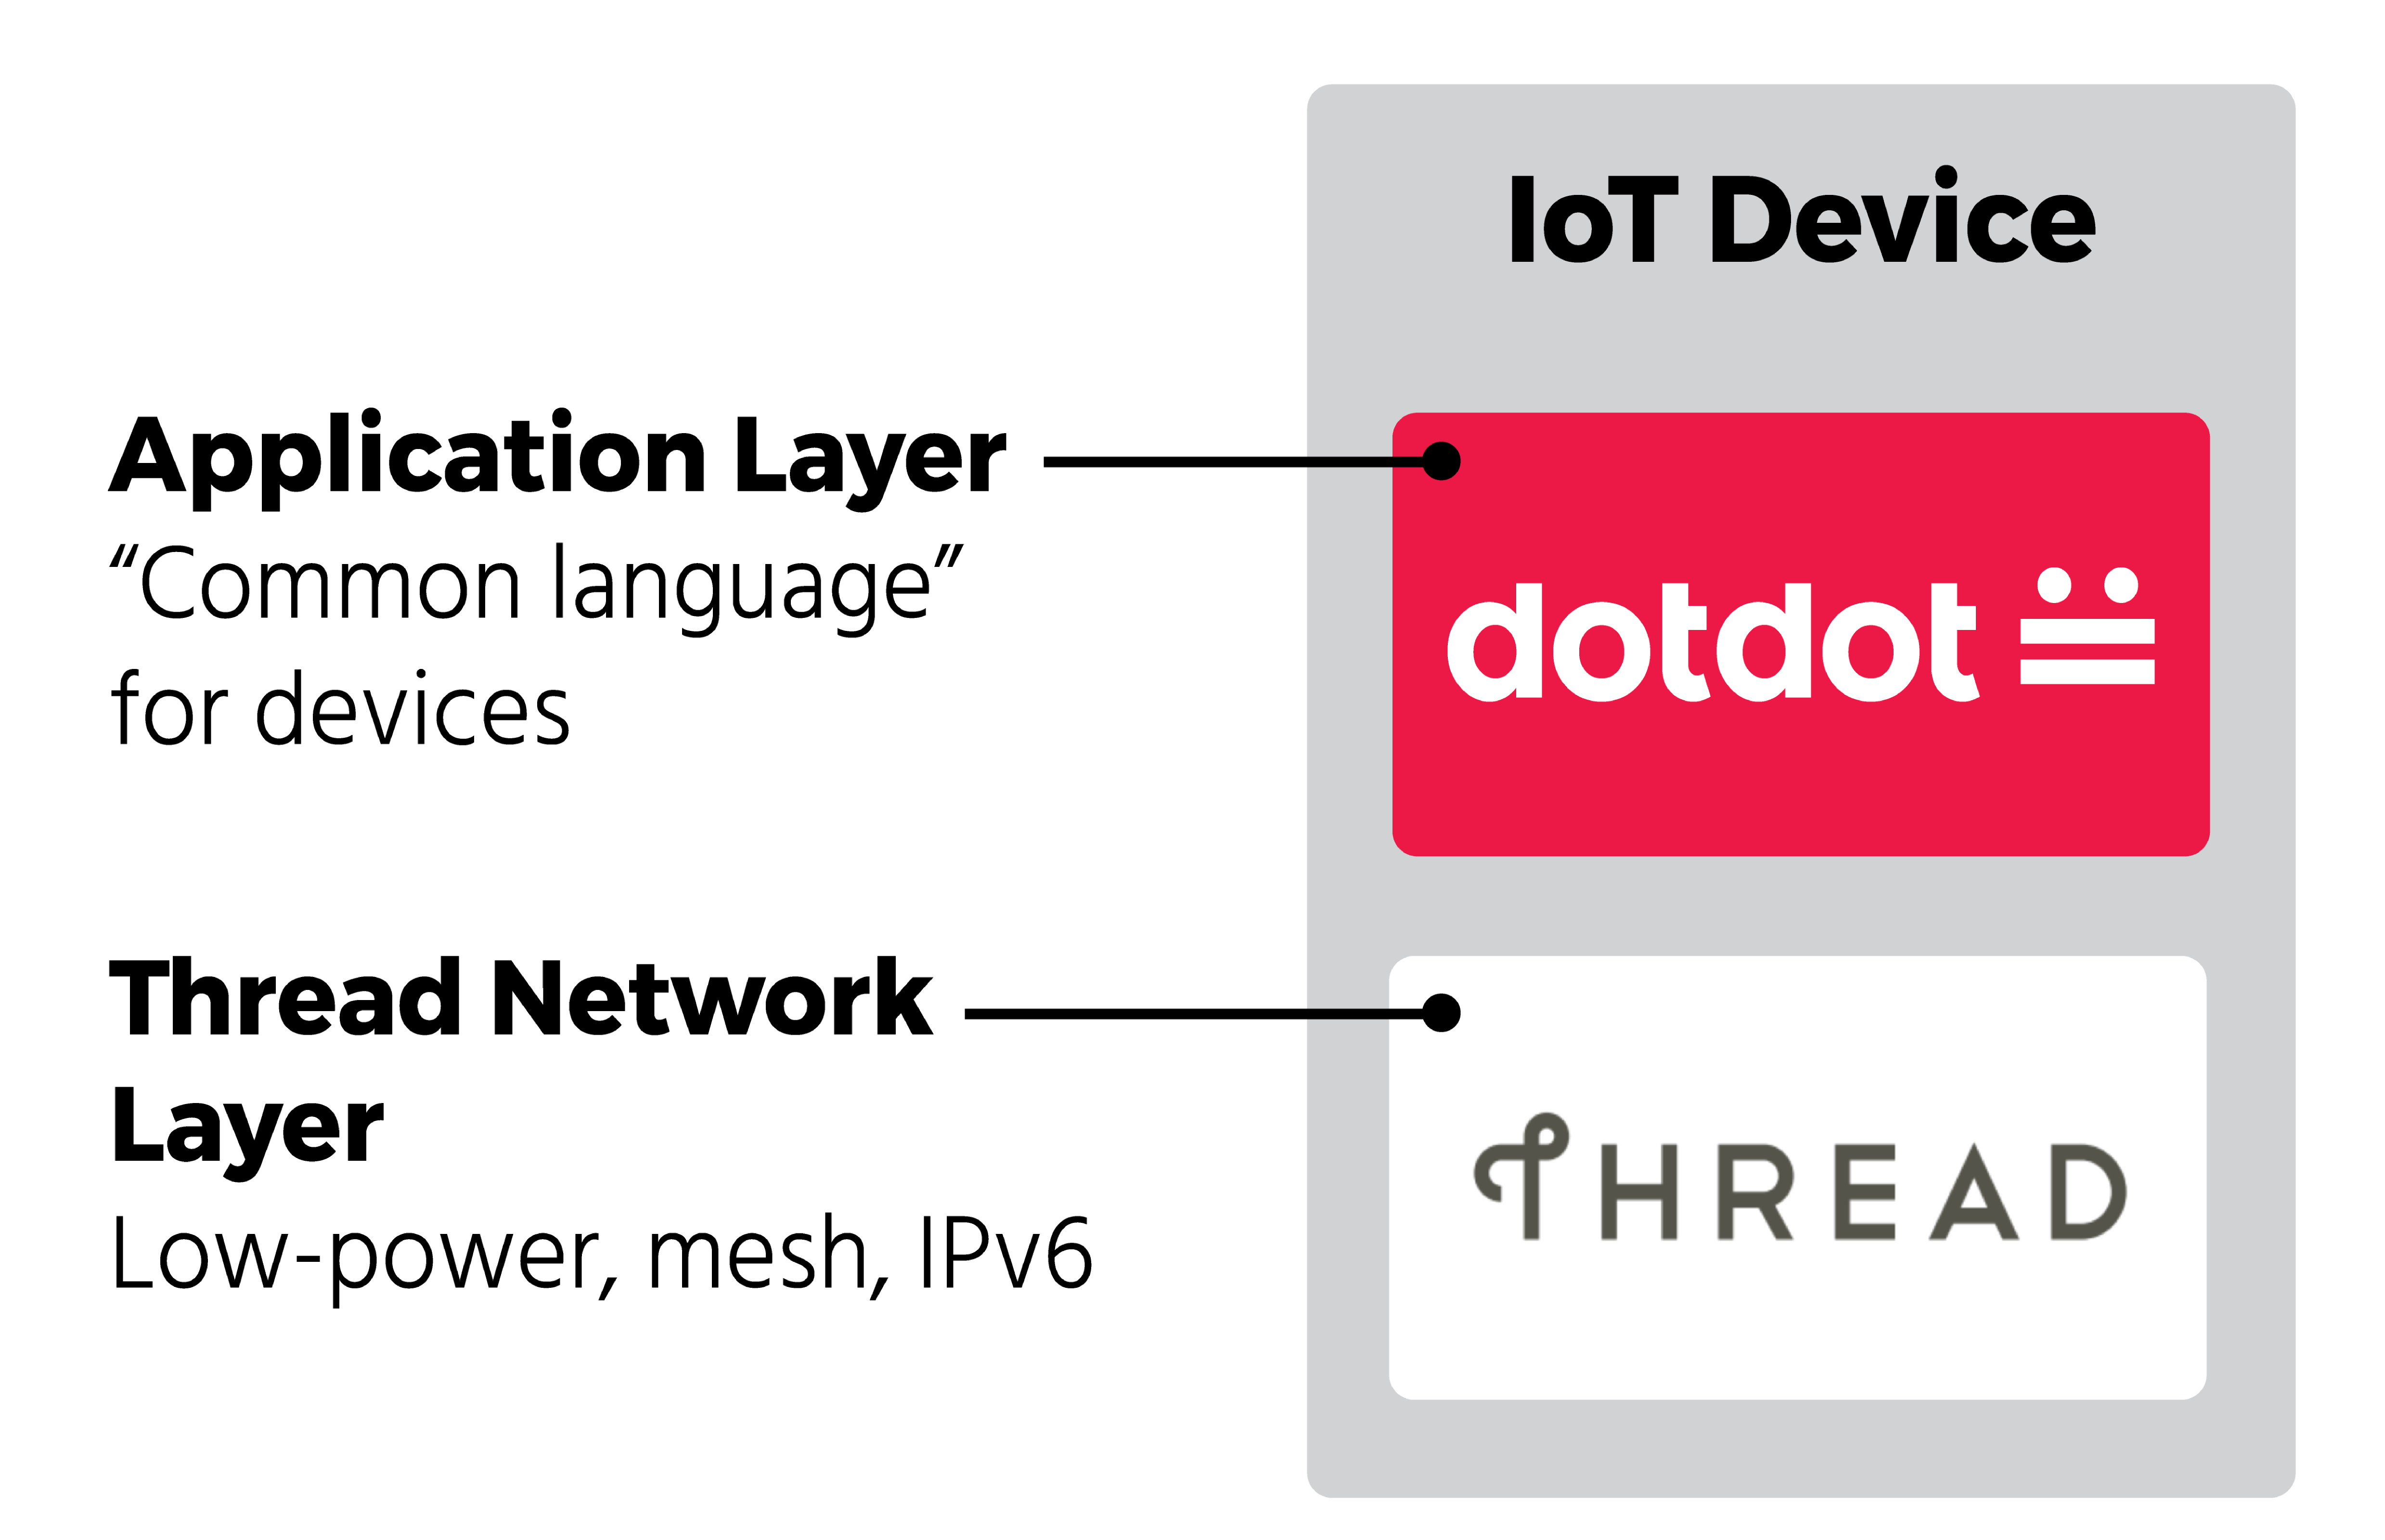 ZigBee and Thread Join IoT Forces With Dotdot